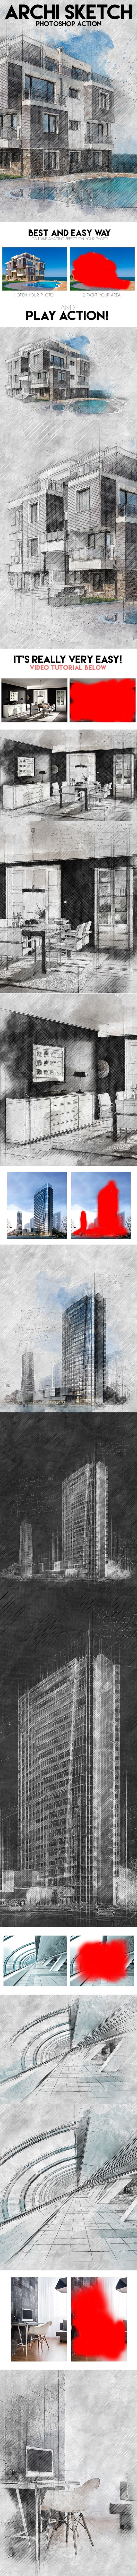 Archi Sketch Photoshop Action. Download here: http://graphicriver.net/item/archi-sketch-photoshop-action/16211716?ref=ksioks